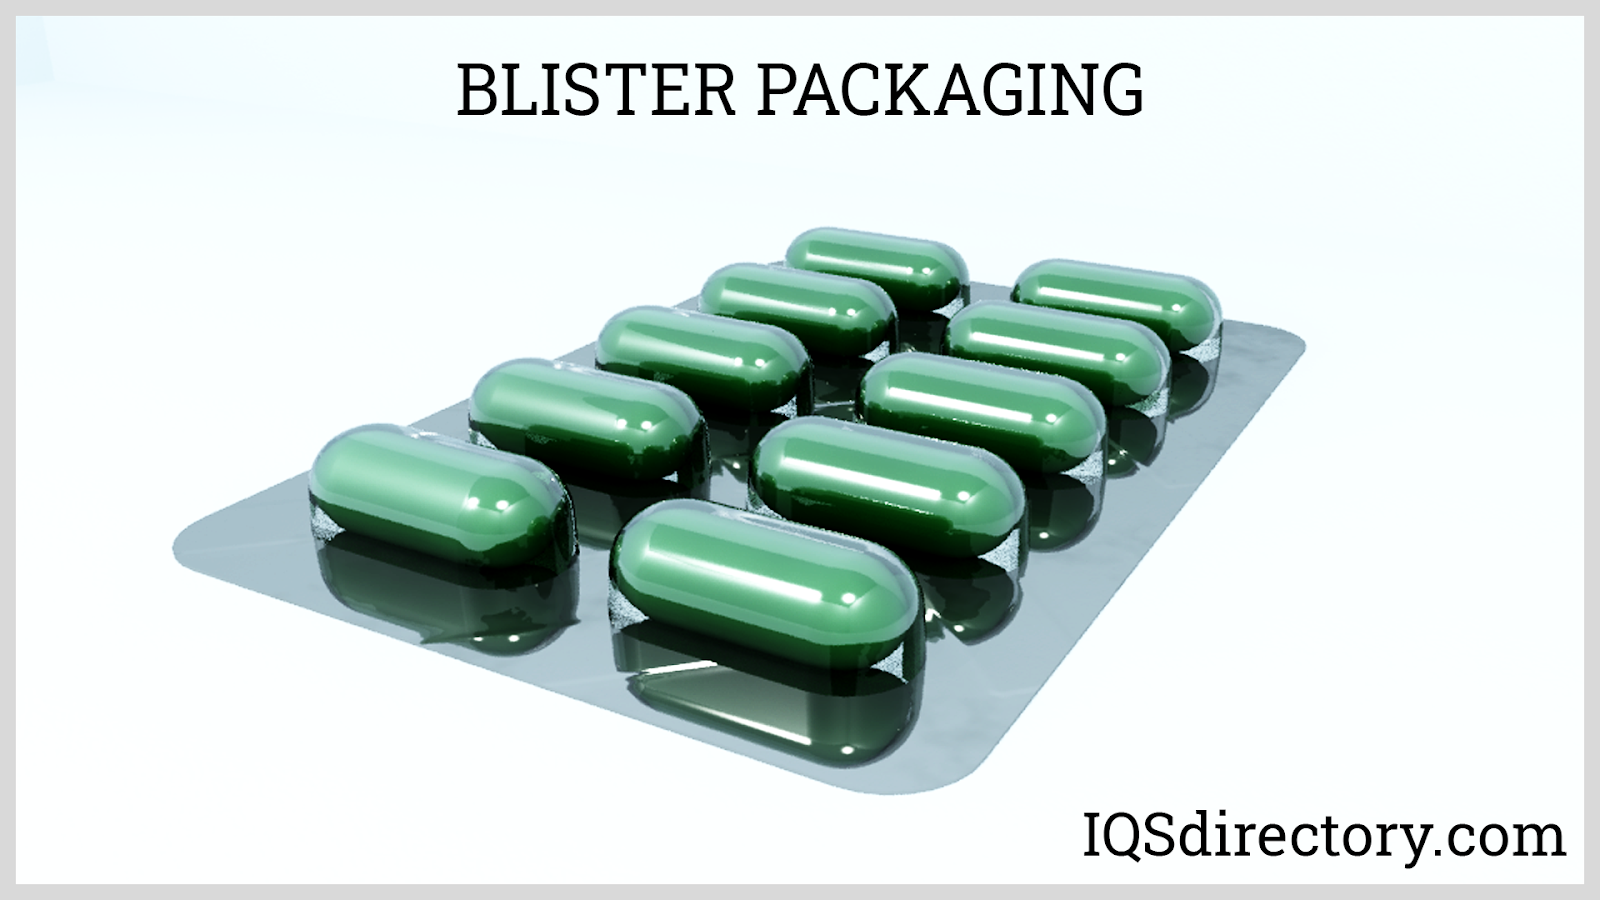 Blister Packaging